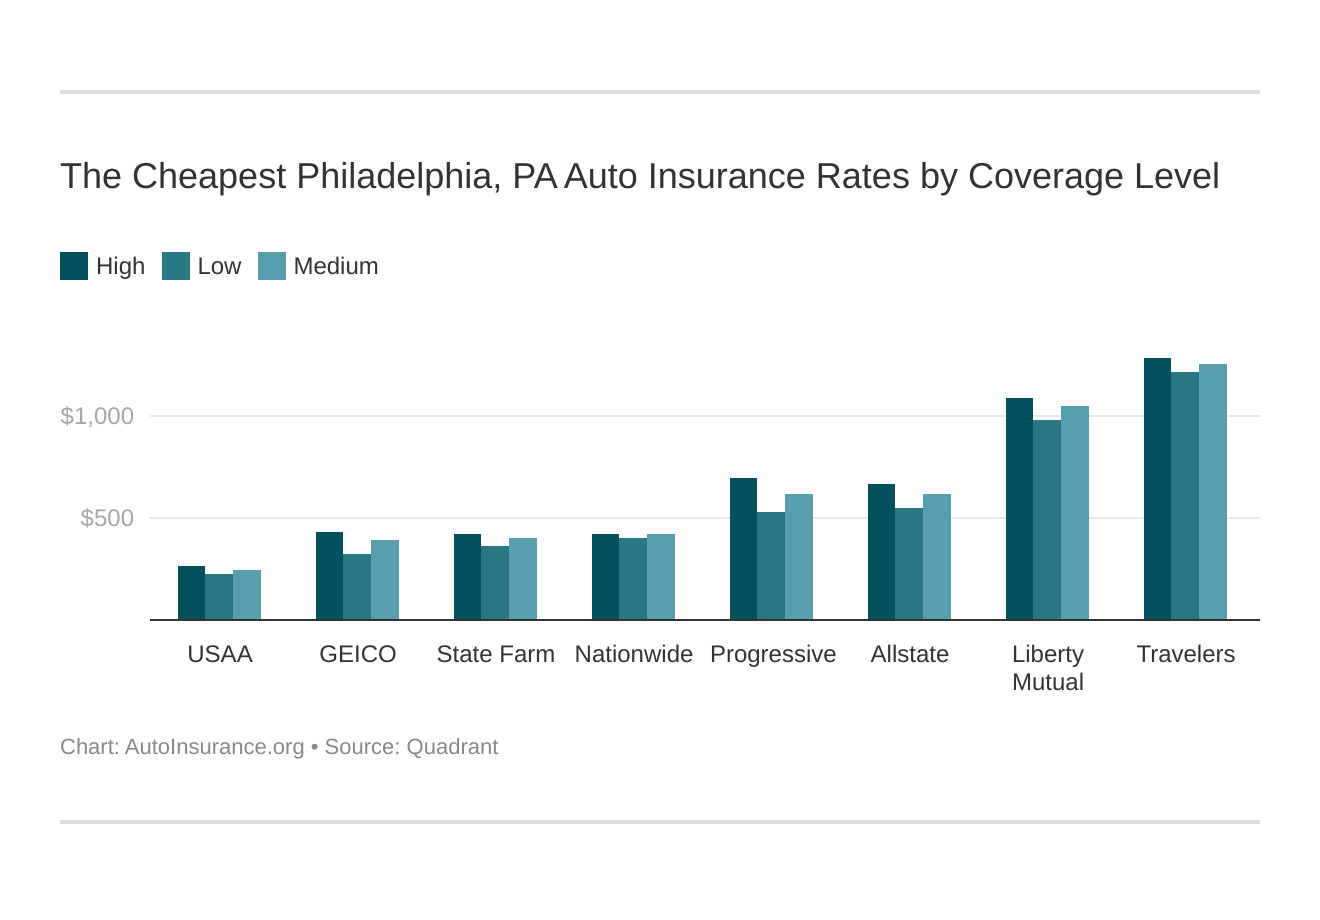 The Cheapest Philadelphia, PA Auto Insurance Rates by Coverage Level